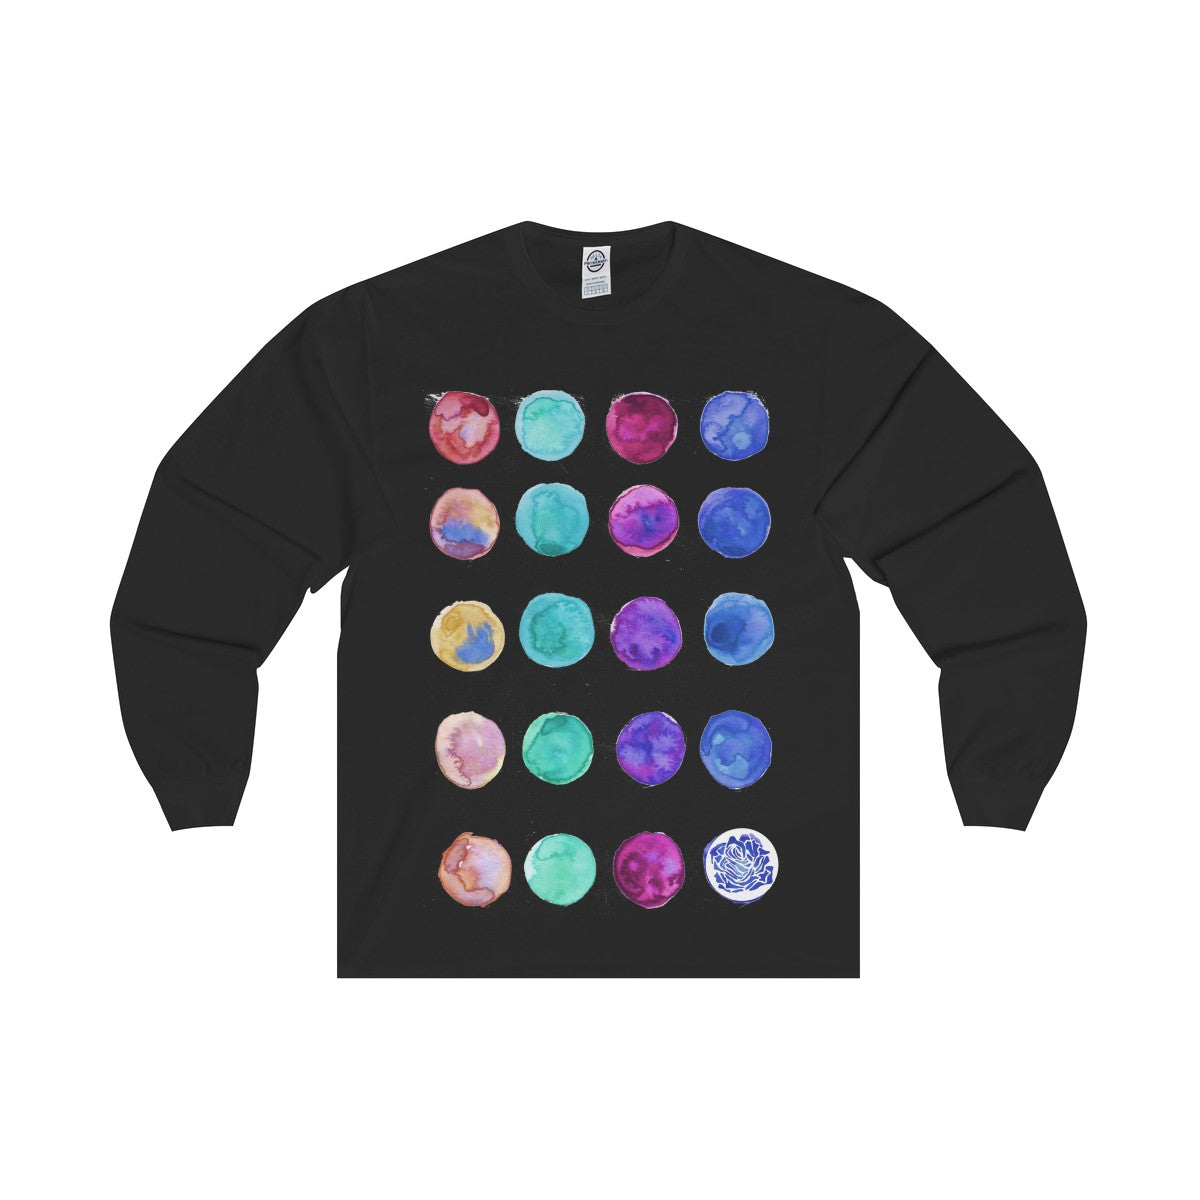 Polka Dots Unisex Designer Premium Long Sleeve Tee - Designed + Made in USA-Long-sleeve-Black-L-Heidi Kimura Art LLC